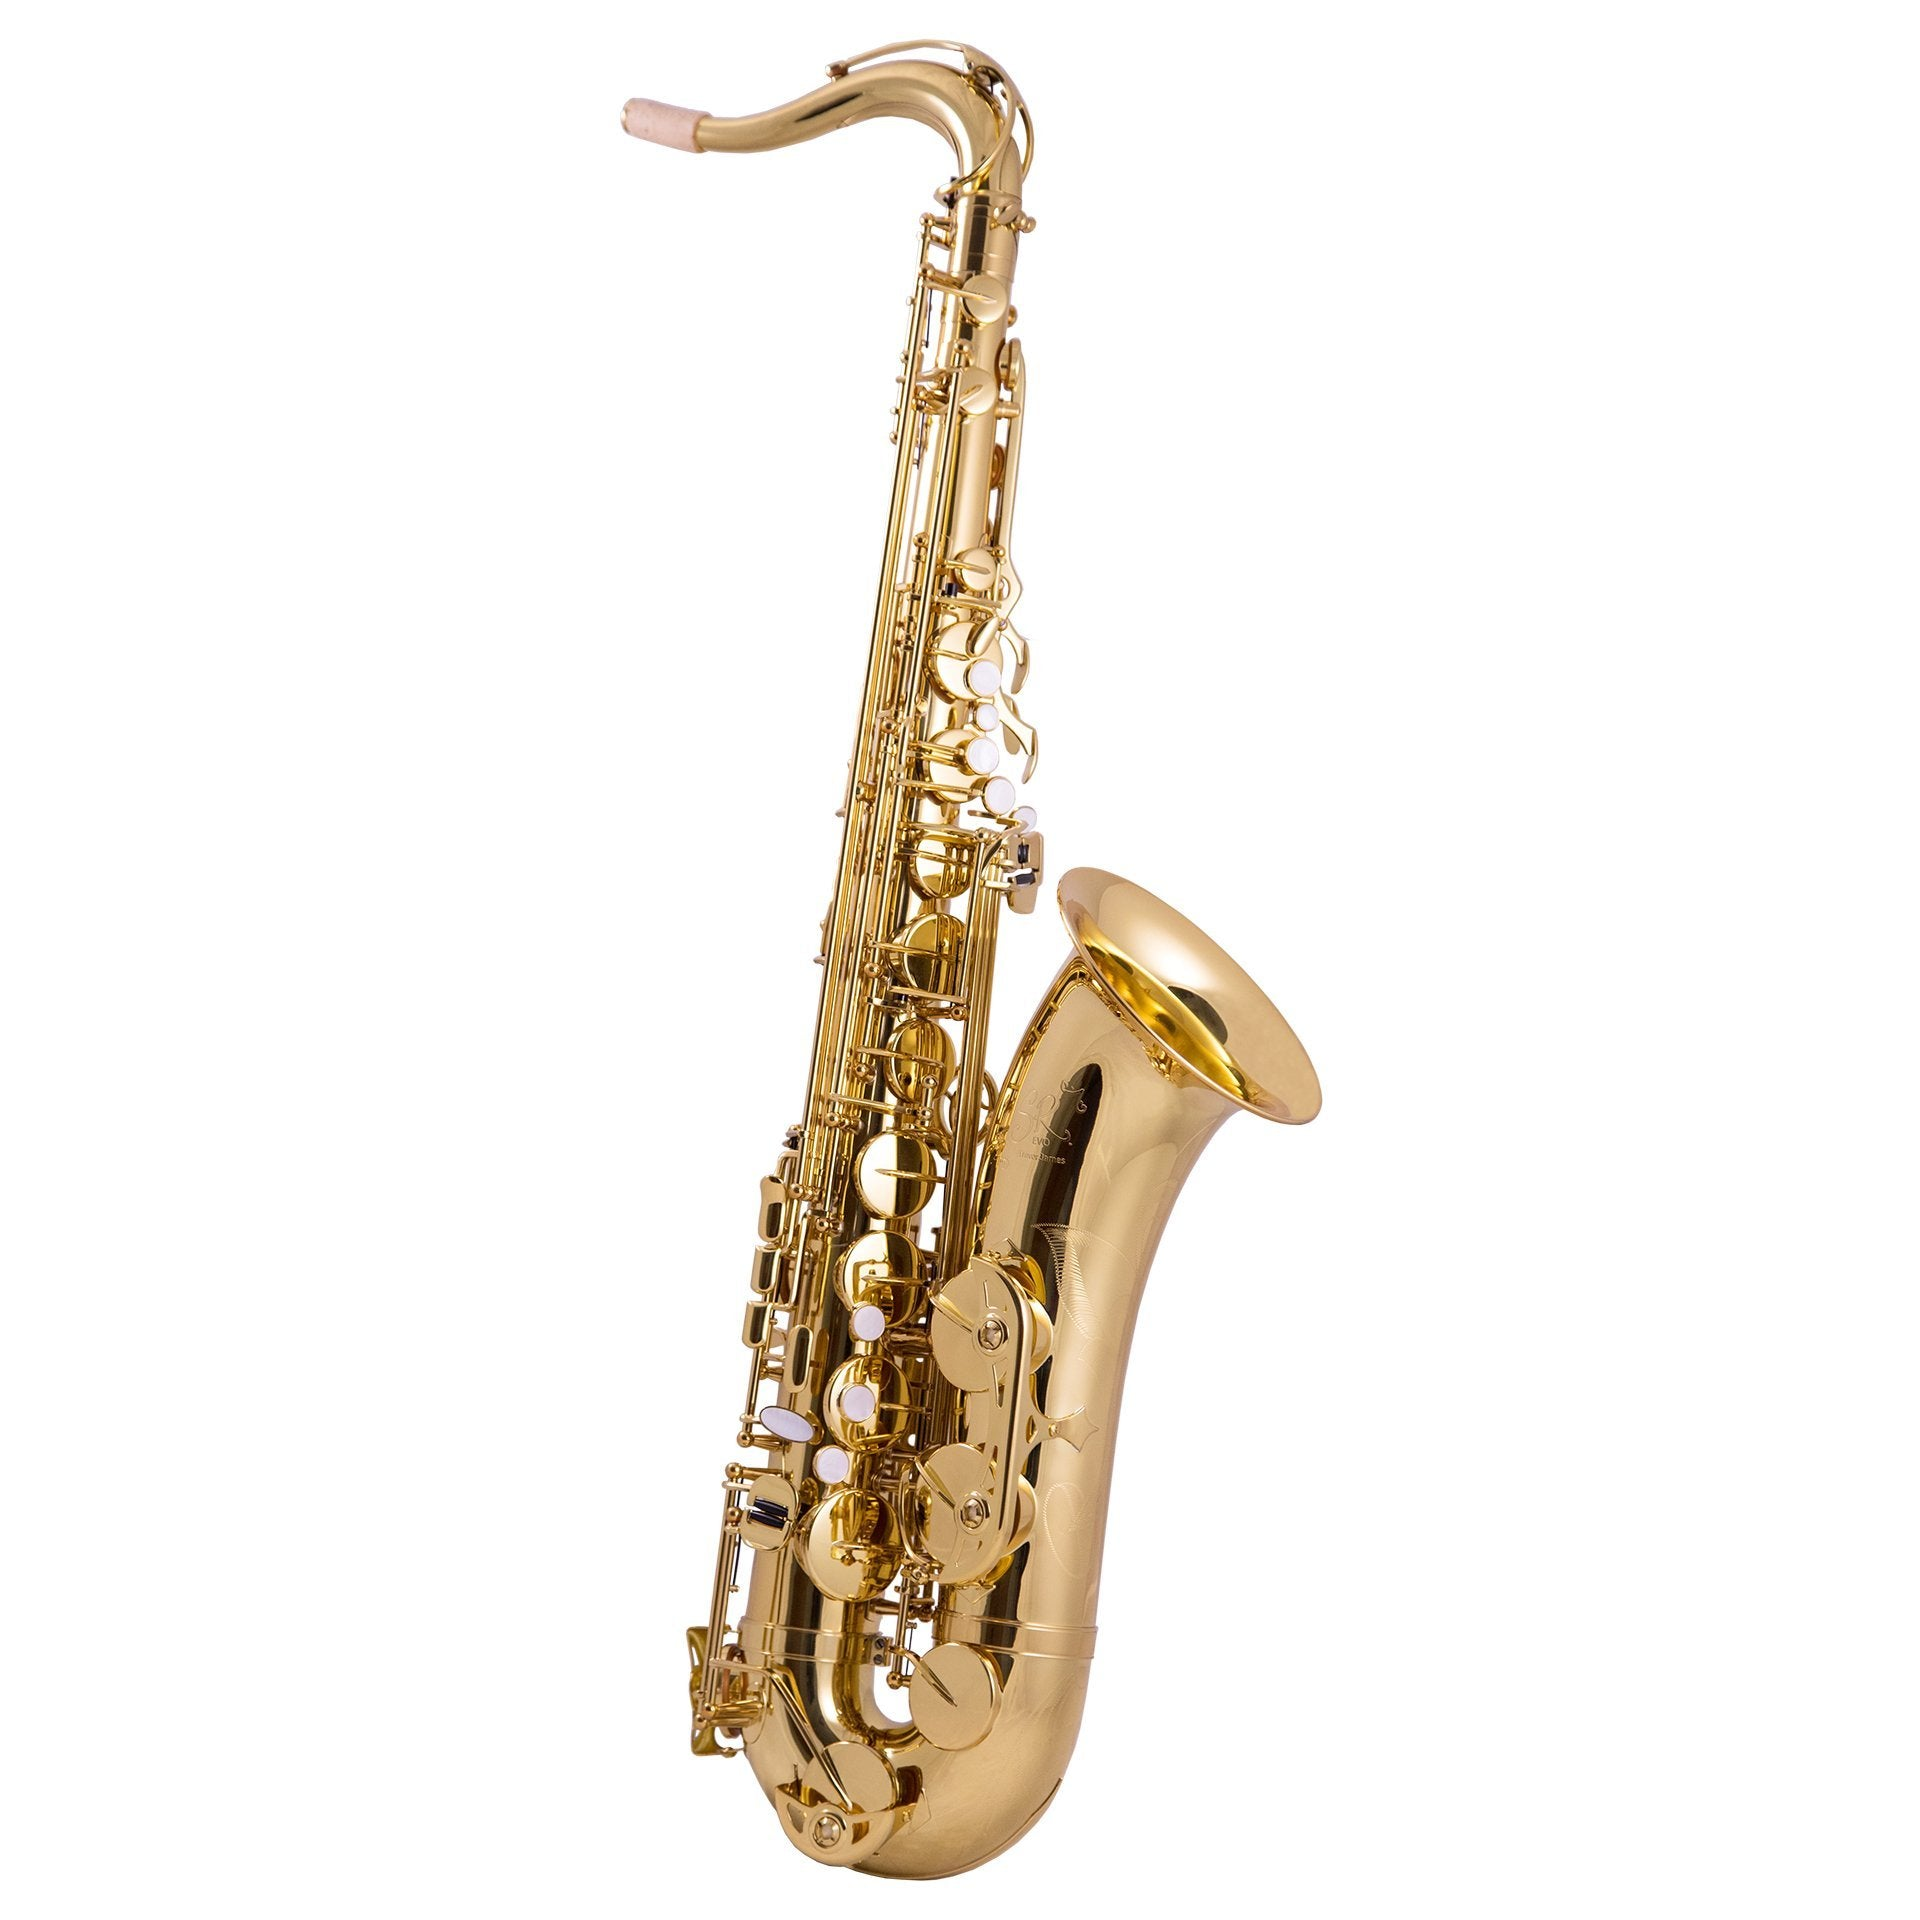 Trevor James - SR EVO Tenor Saxophone-Saxophone-Trevor James-Music Elements